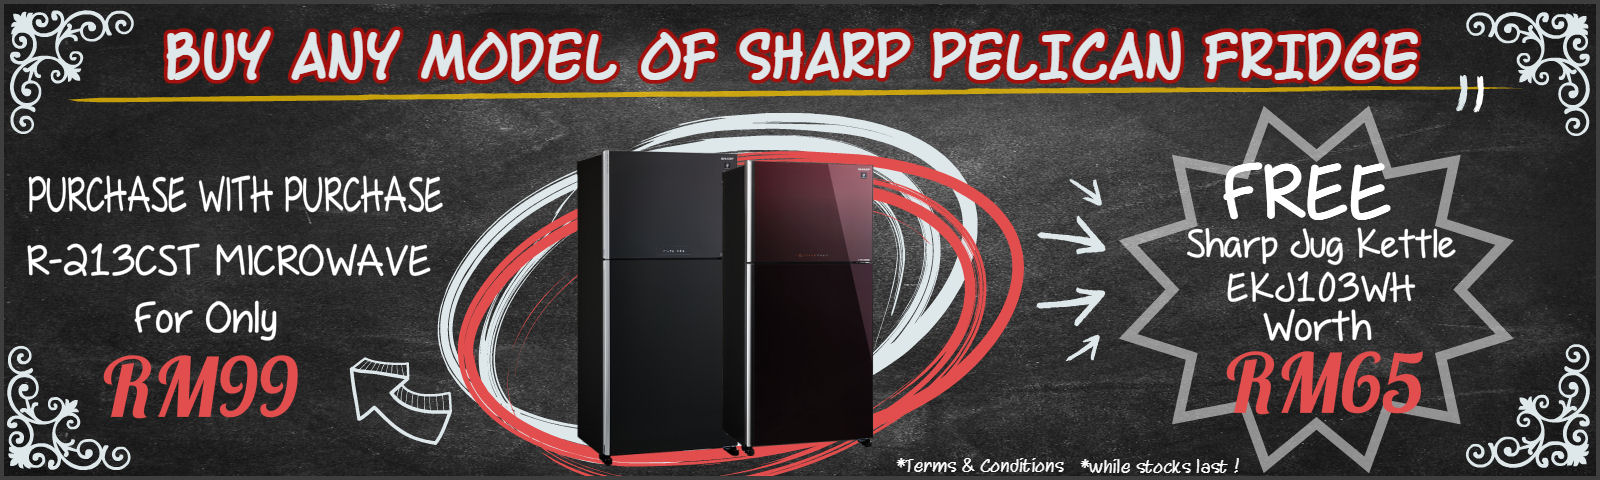 Sharp PELICAN Fridge on offer!!